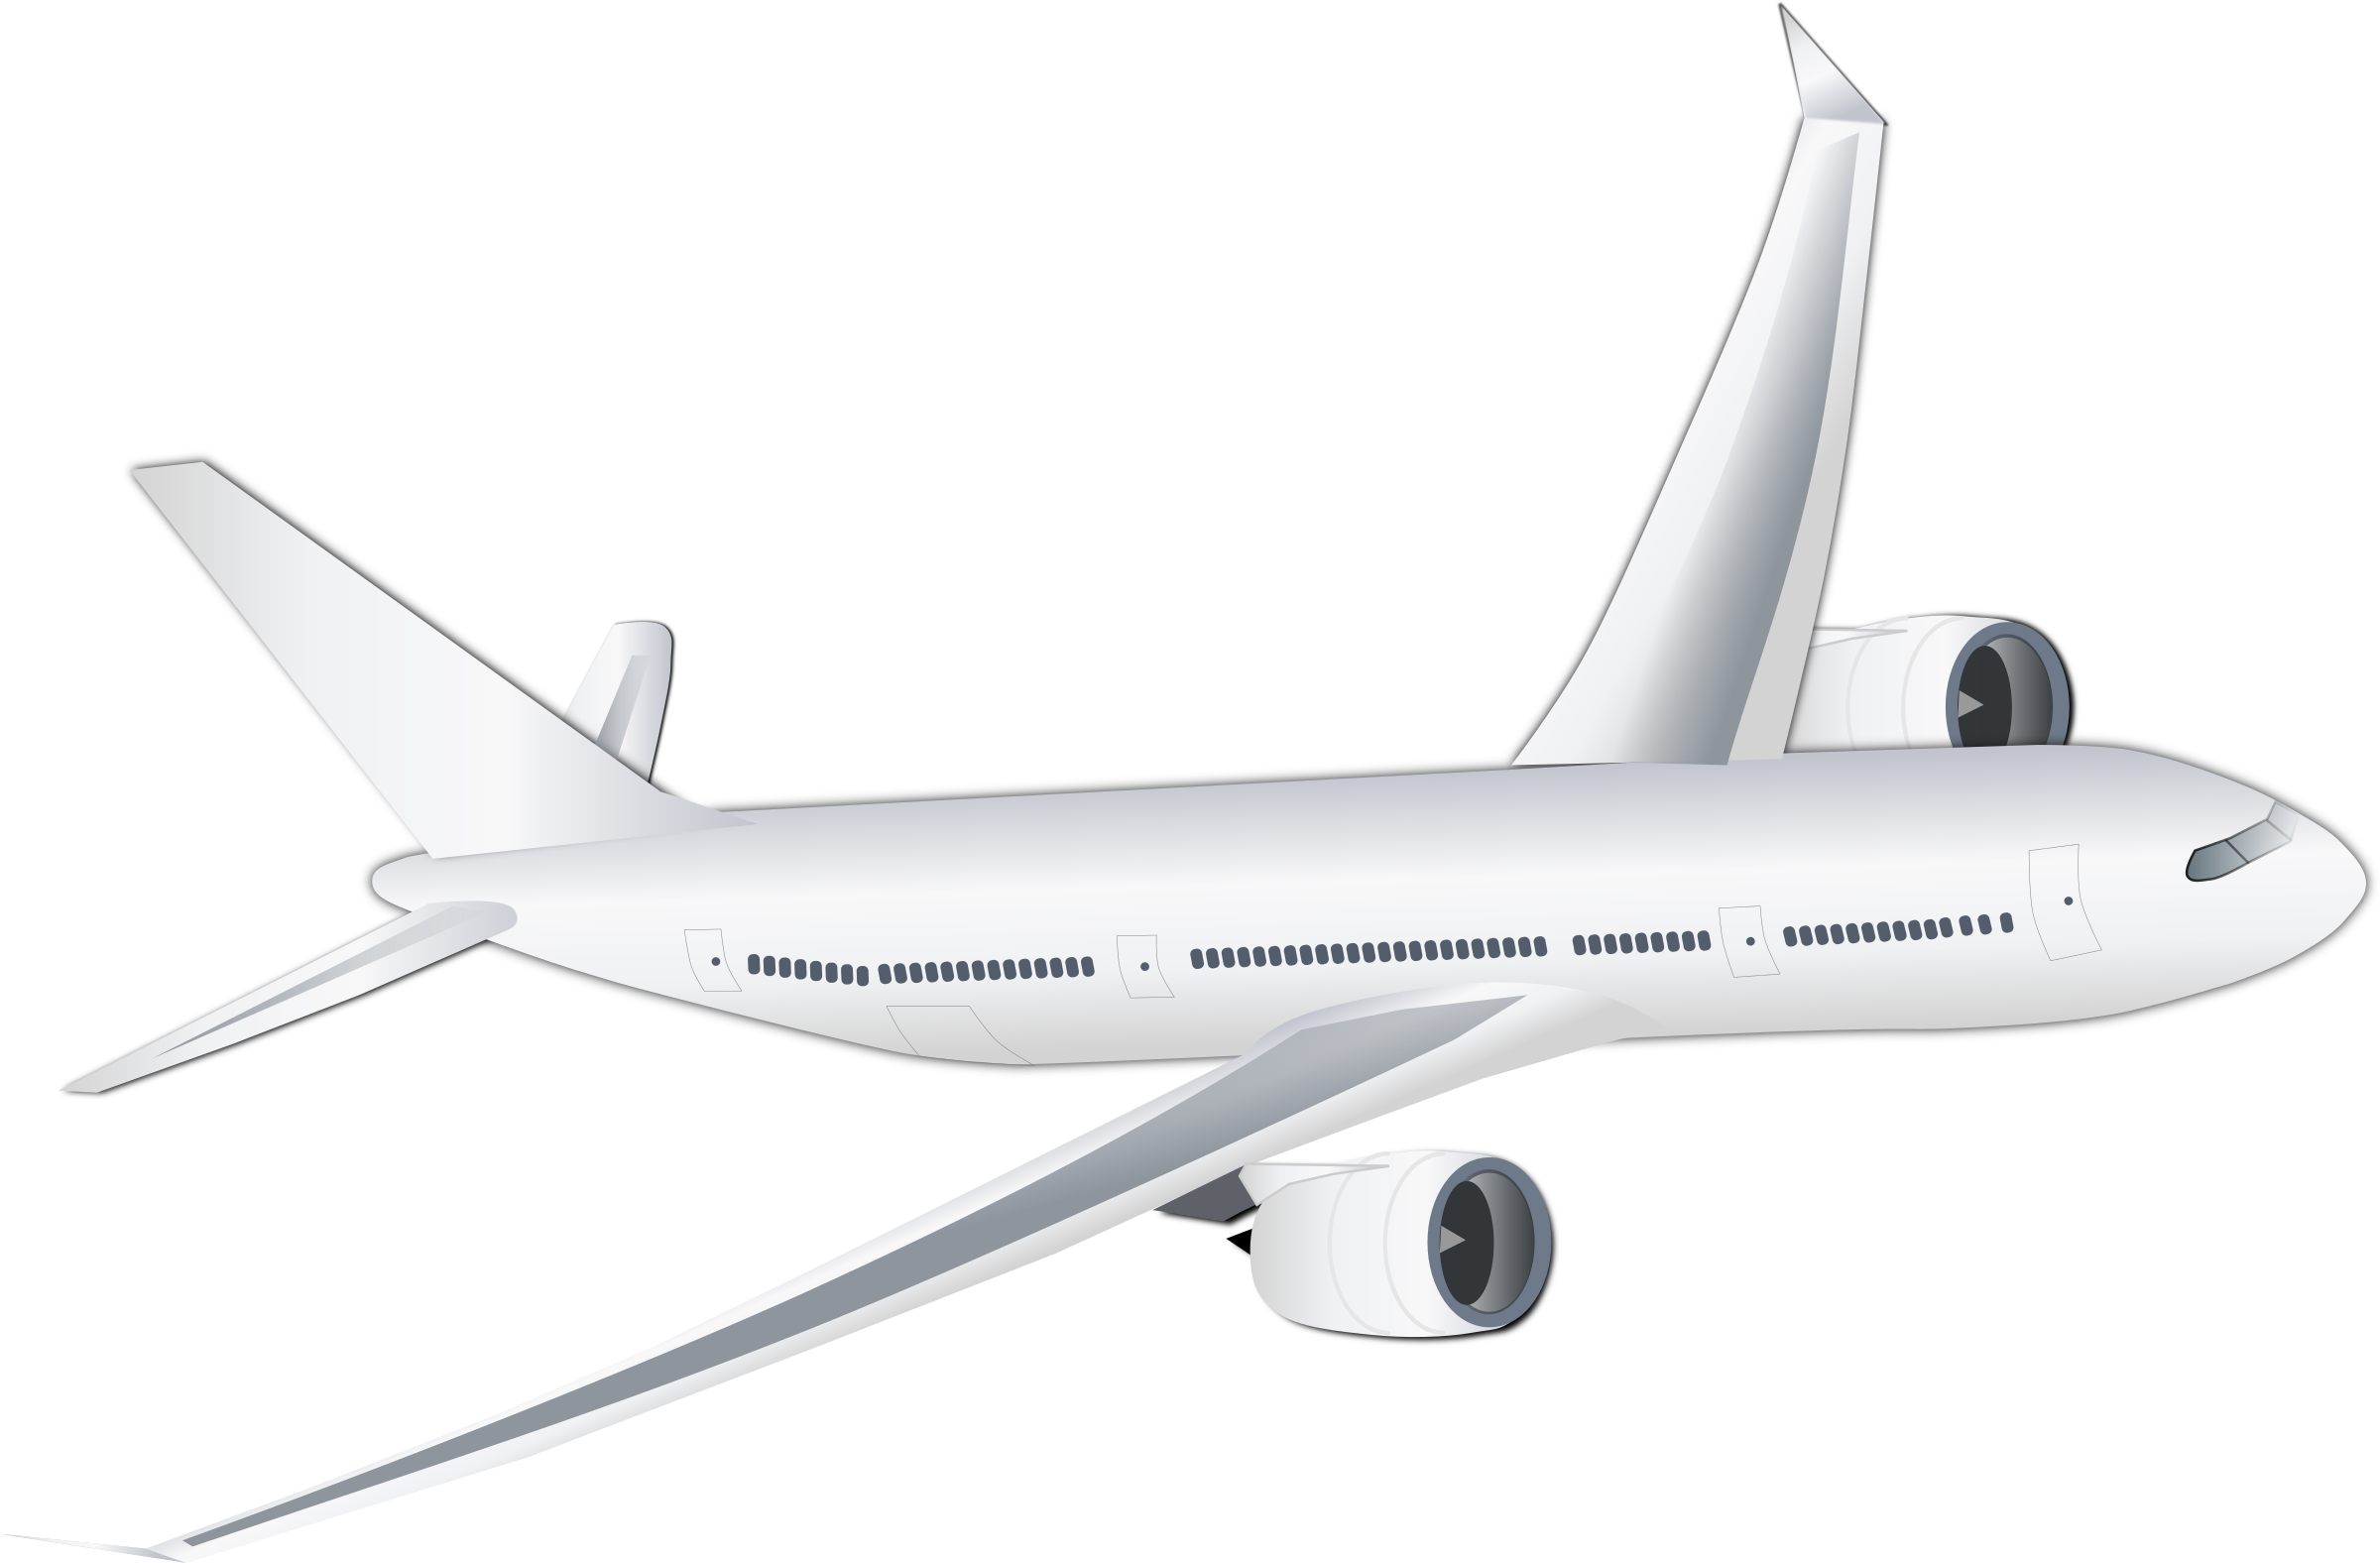 Jet clipart big airplane, Jet big airplane Transparent FREE.